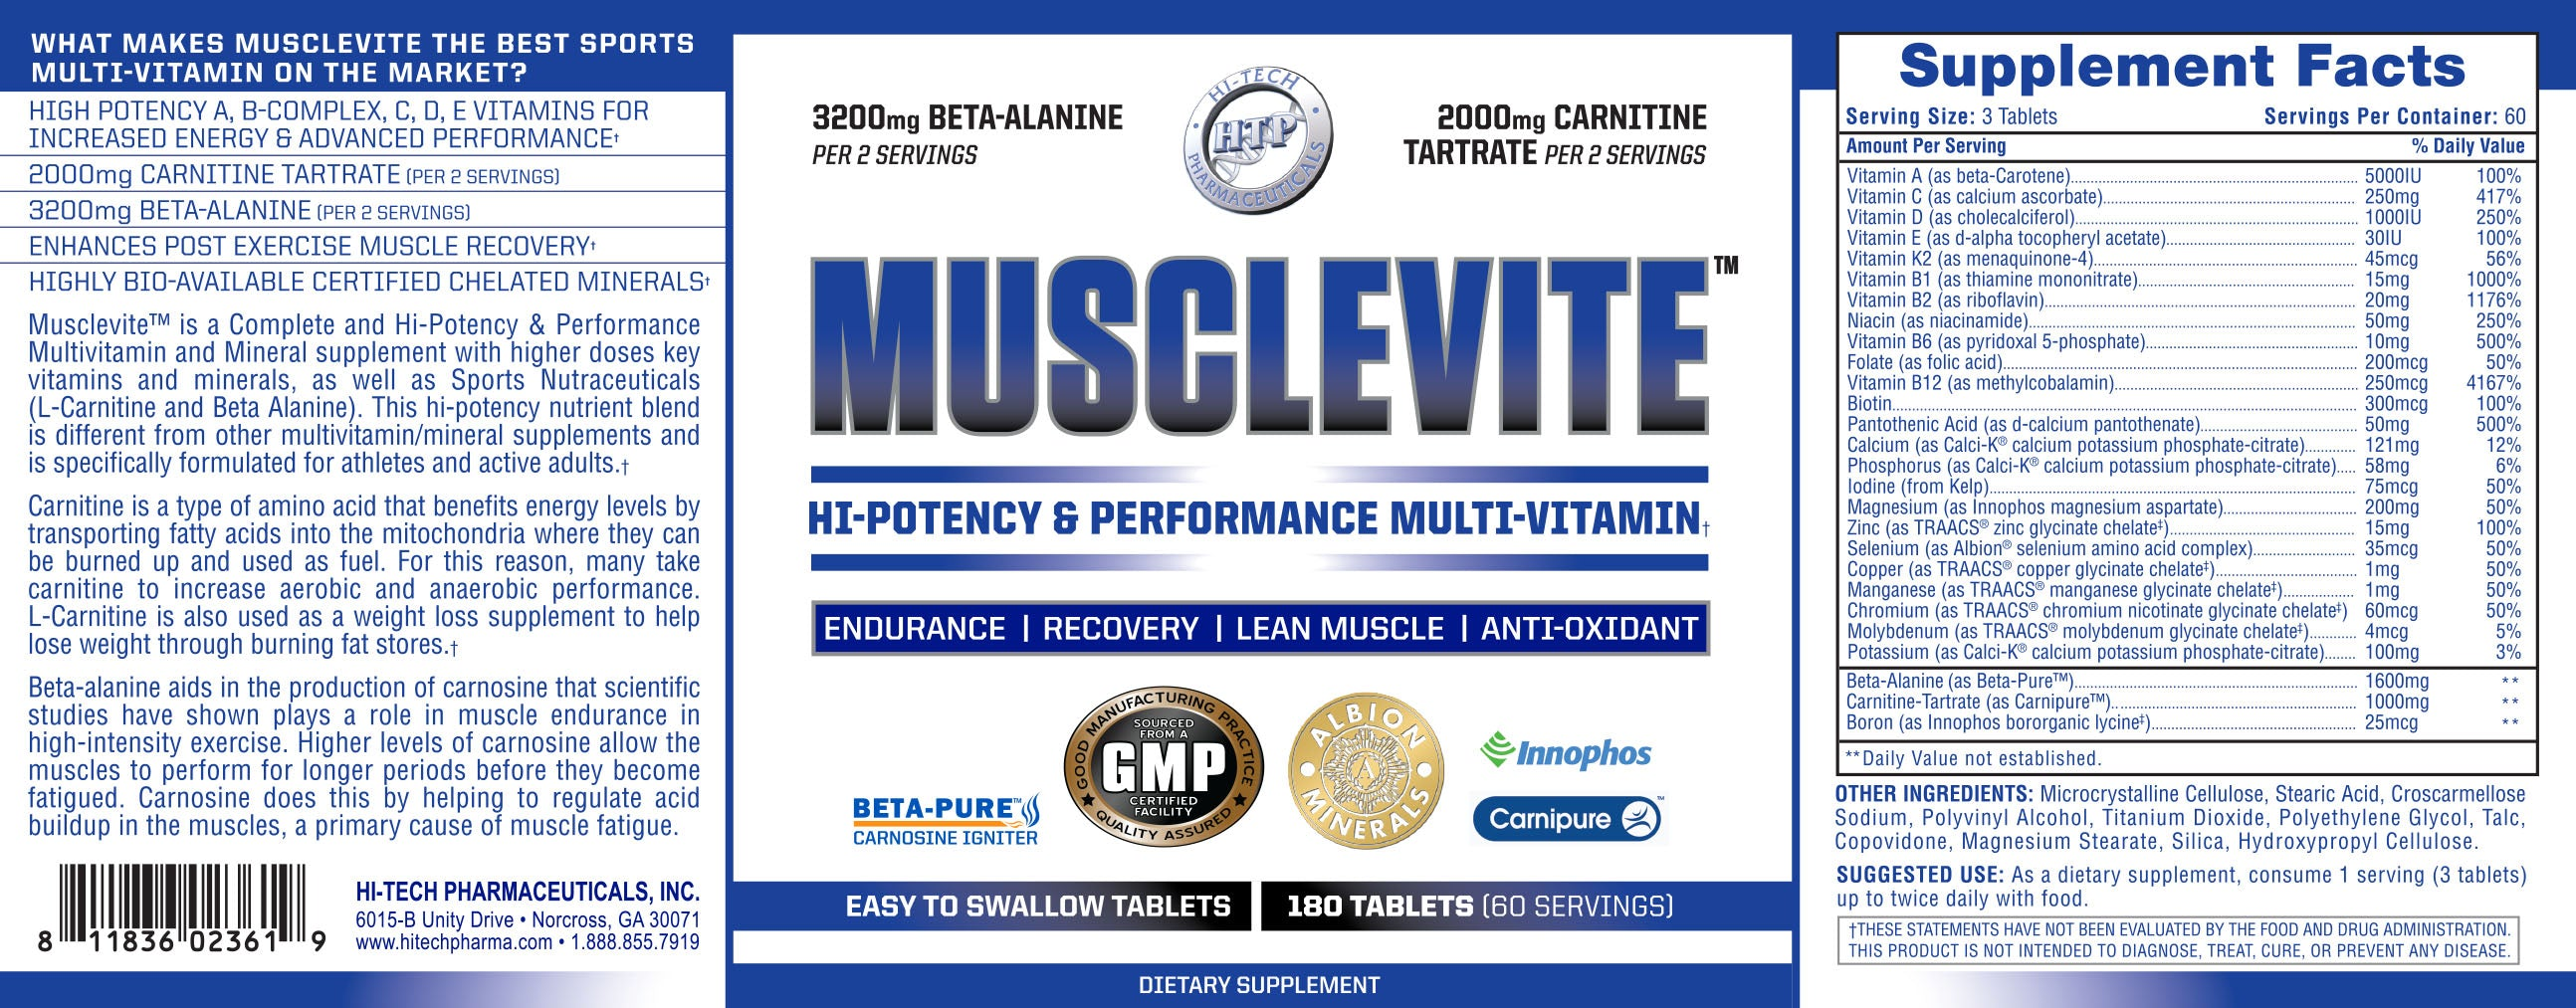 MuscleVite Supplement Facts